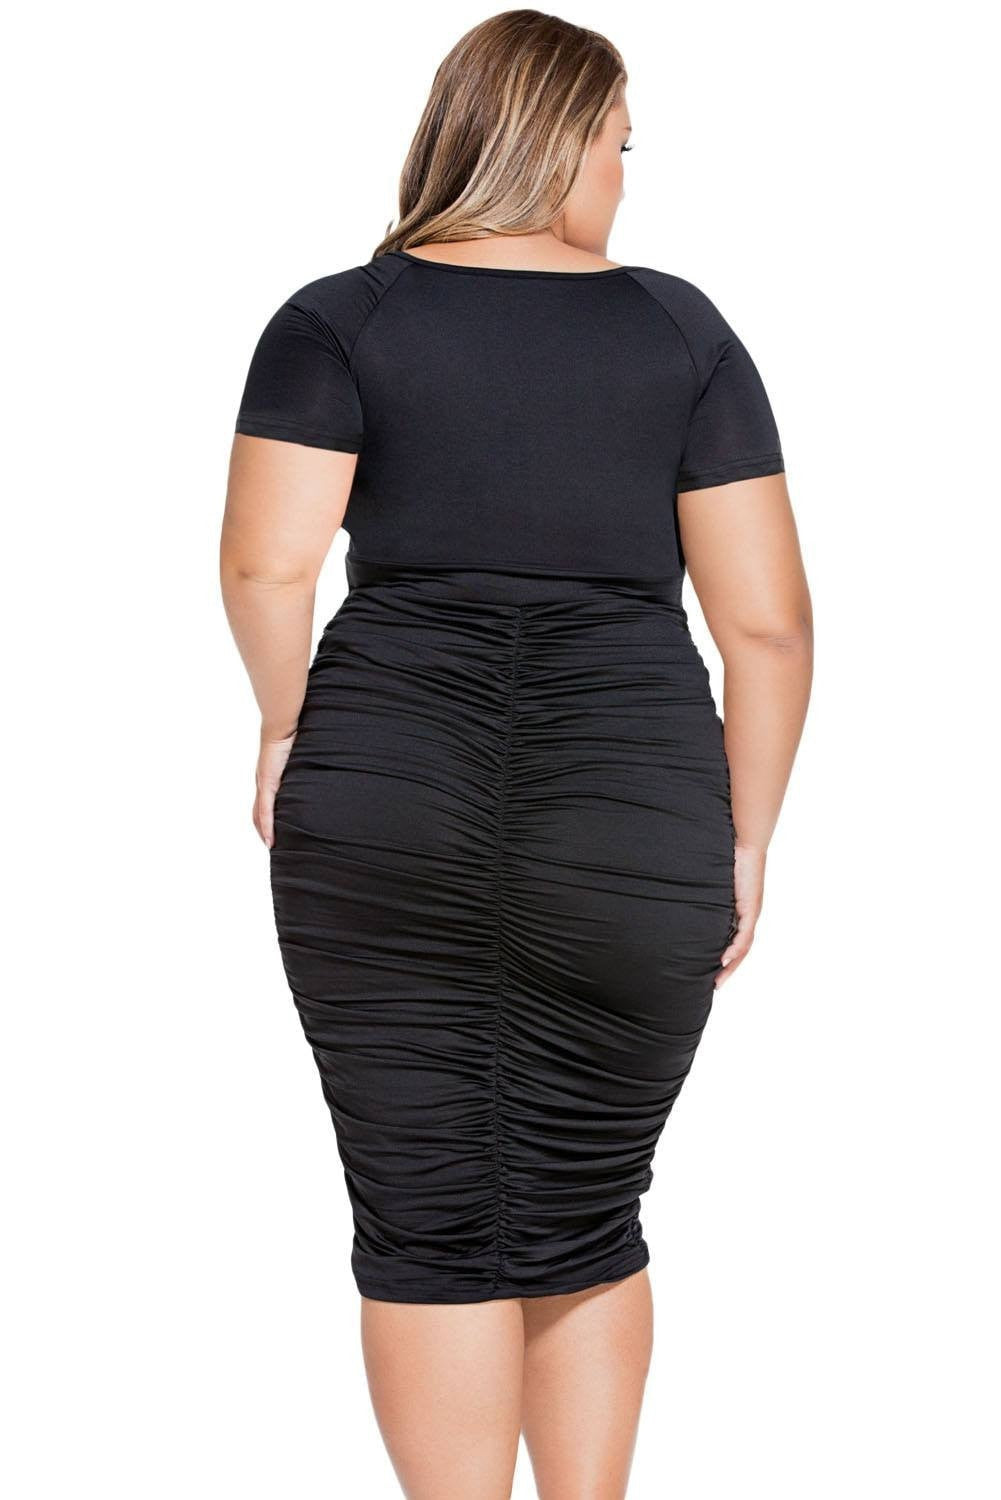 Sophia Plus Curvaceous Midi Black Plus Dress 2X - Budget Babe Couture